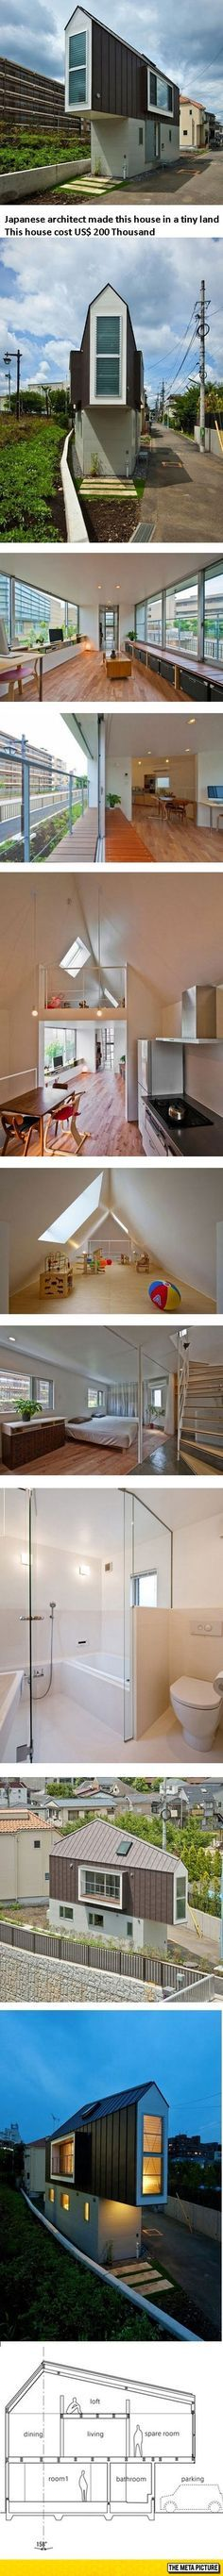 Clever Japanese Architecture